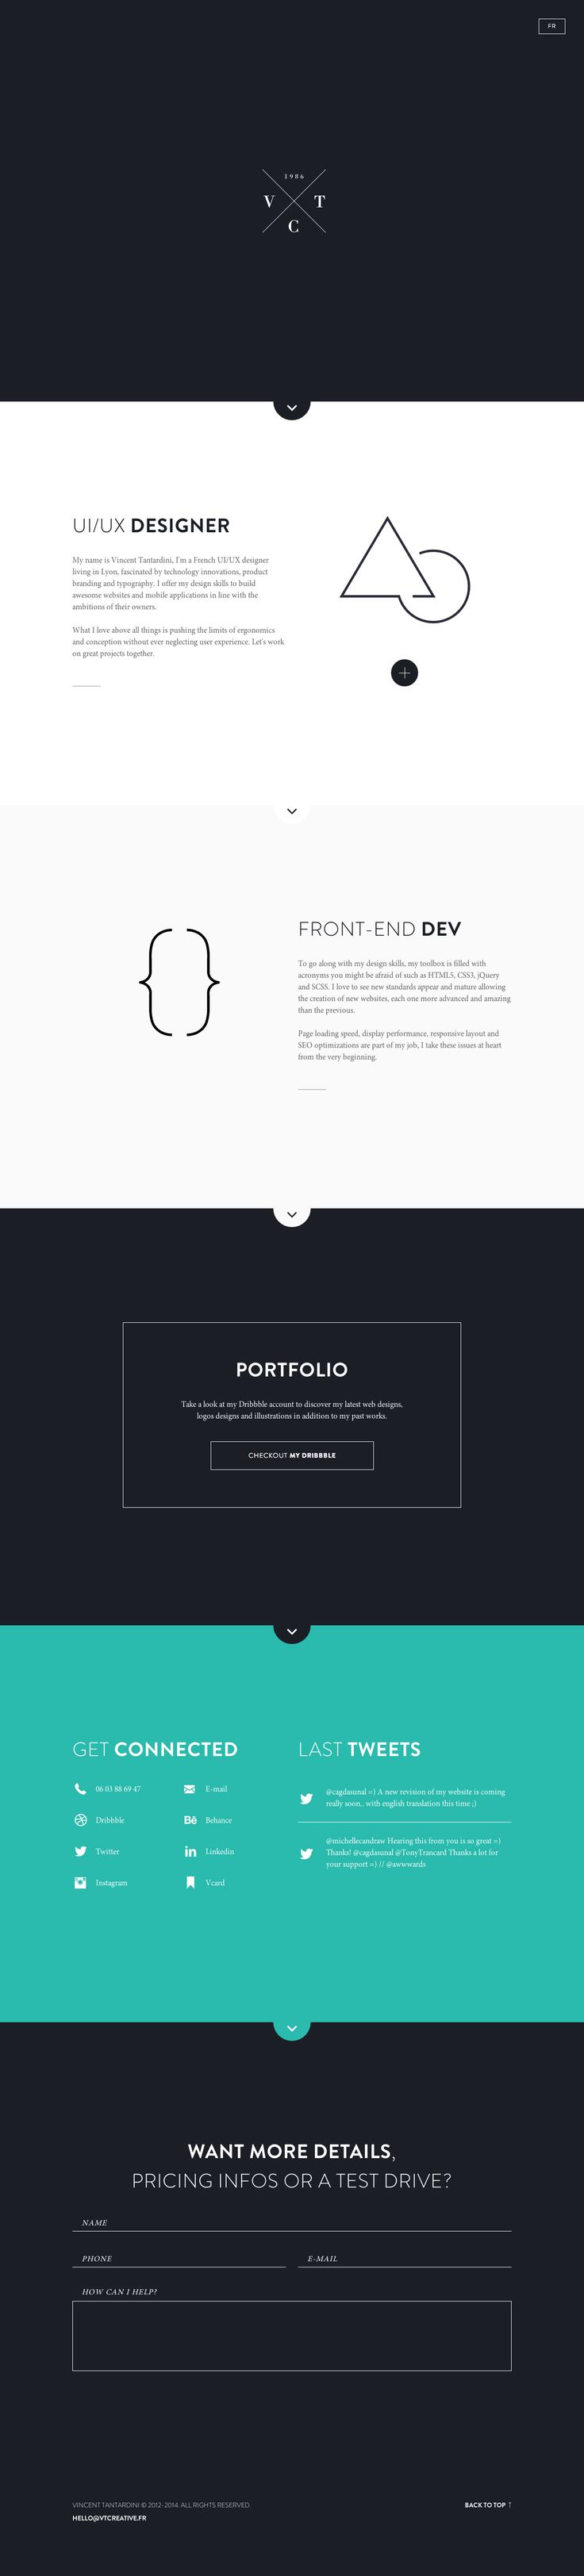 Man that logo is so overdone and overrated. I like how clean this site is though. I would show my actual work in the portfolio section though, that's pretty much one of the main reason to have a website.